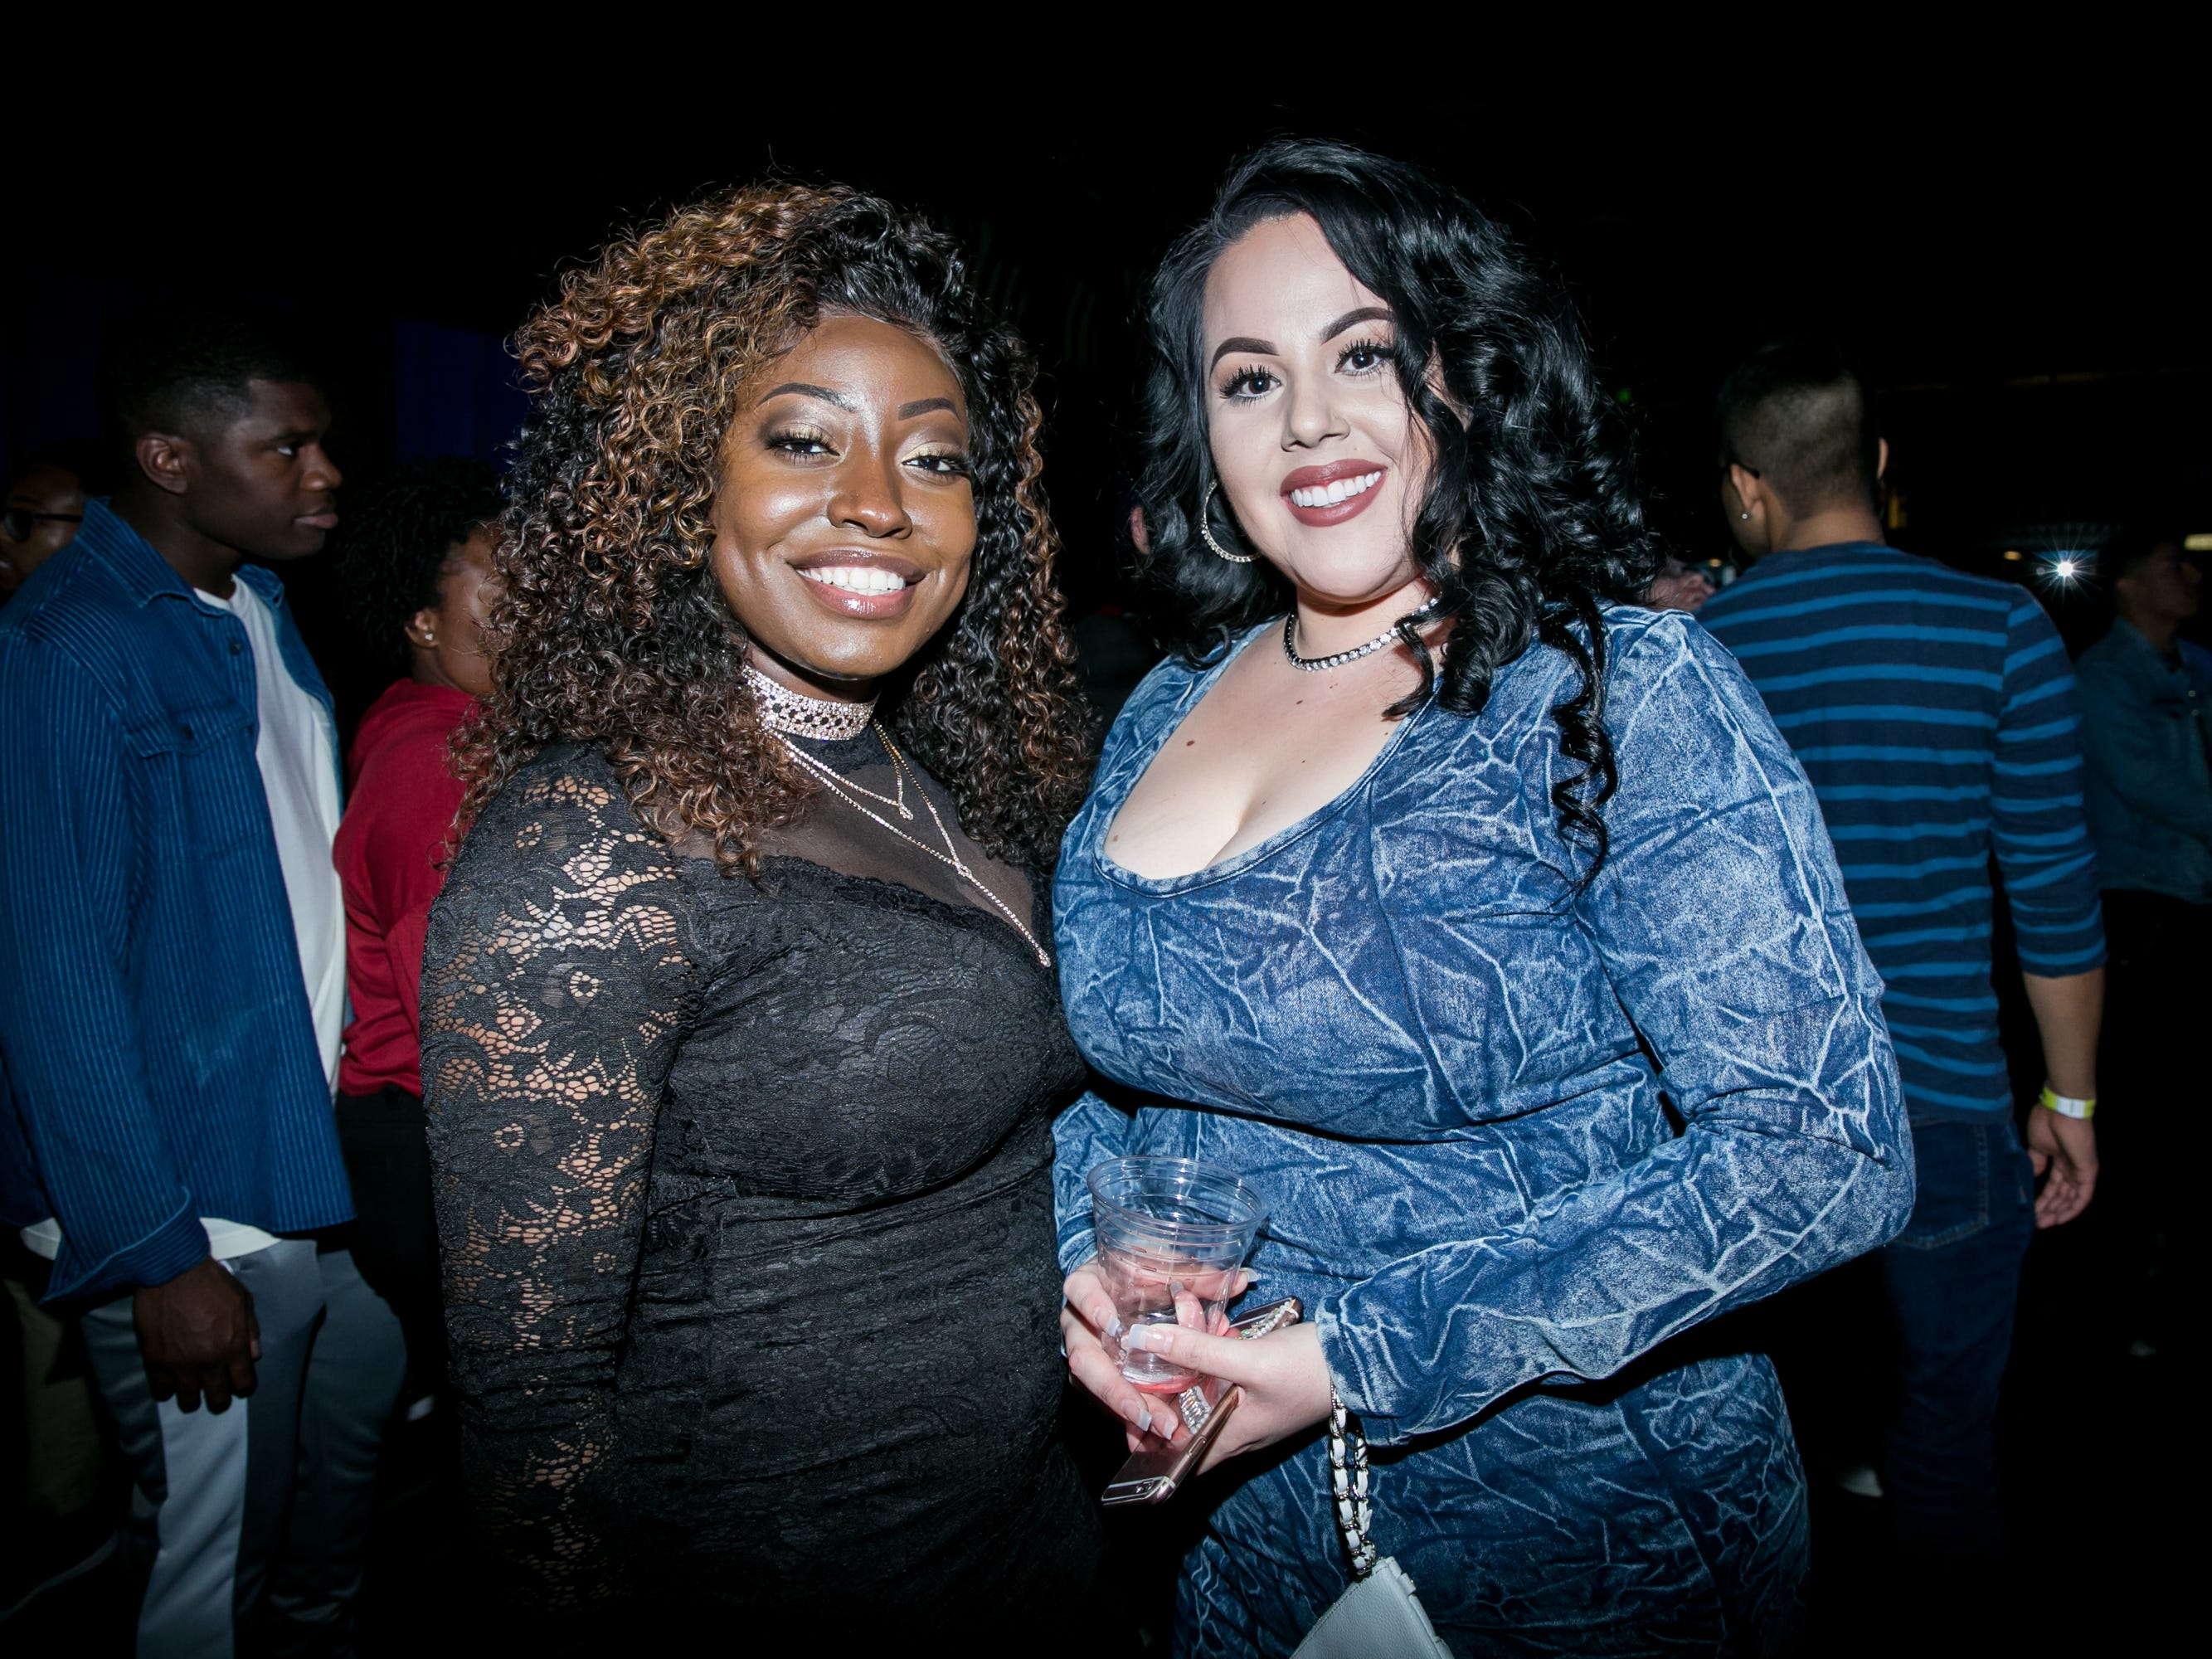 They were in their feelings during Drake Night: Fake Real Love at the Van Buren on Feb. 9, 2019.